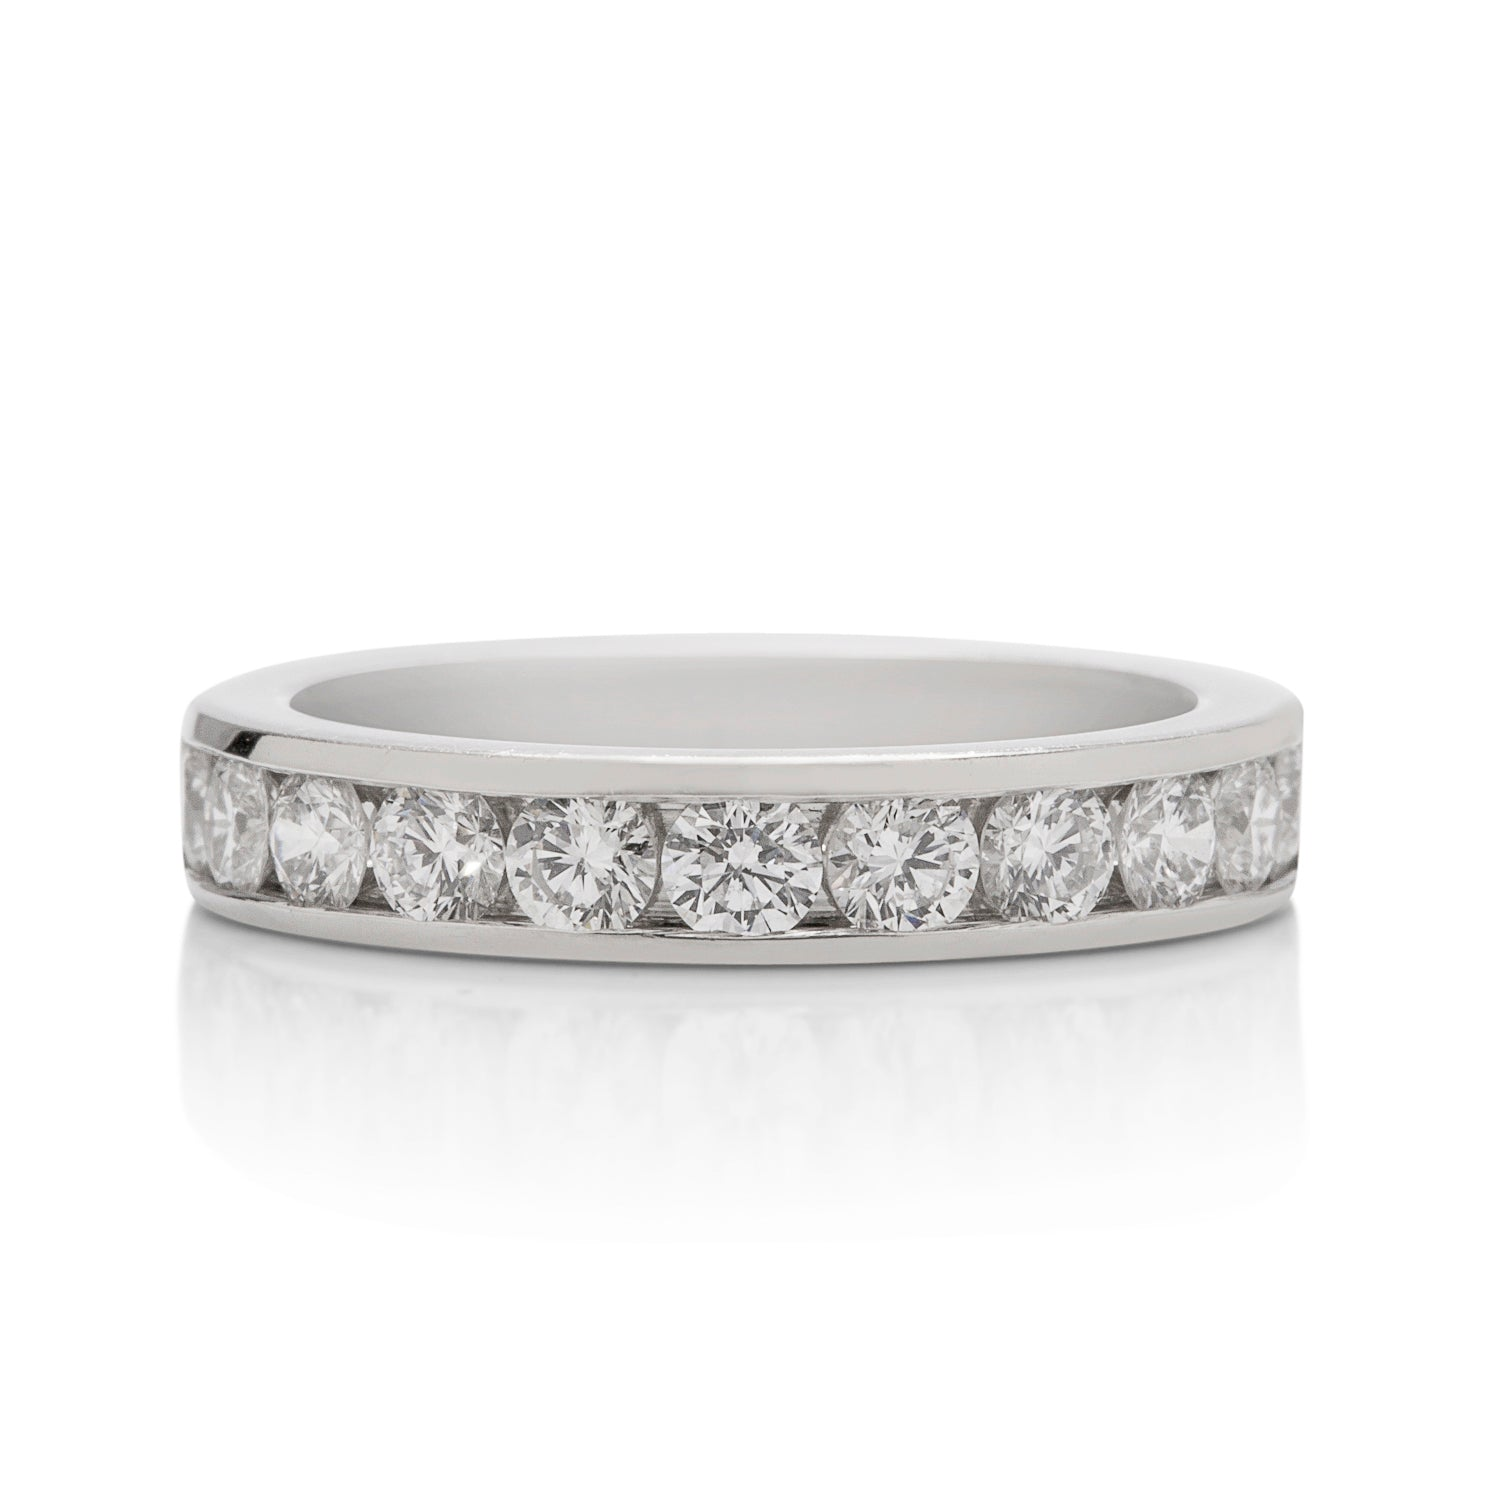 1.00 CTW Channel Set Diamond Platinum Band - Charles Koll Jewellers